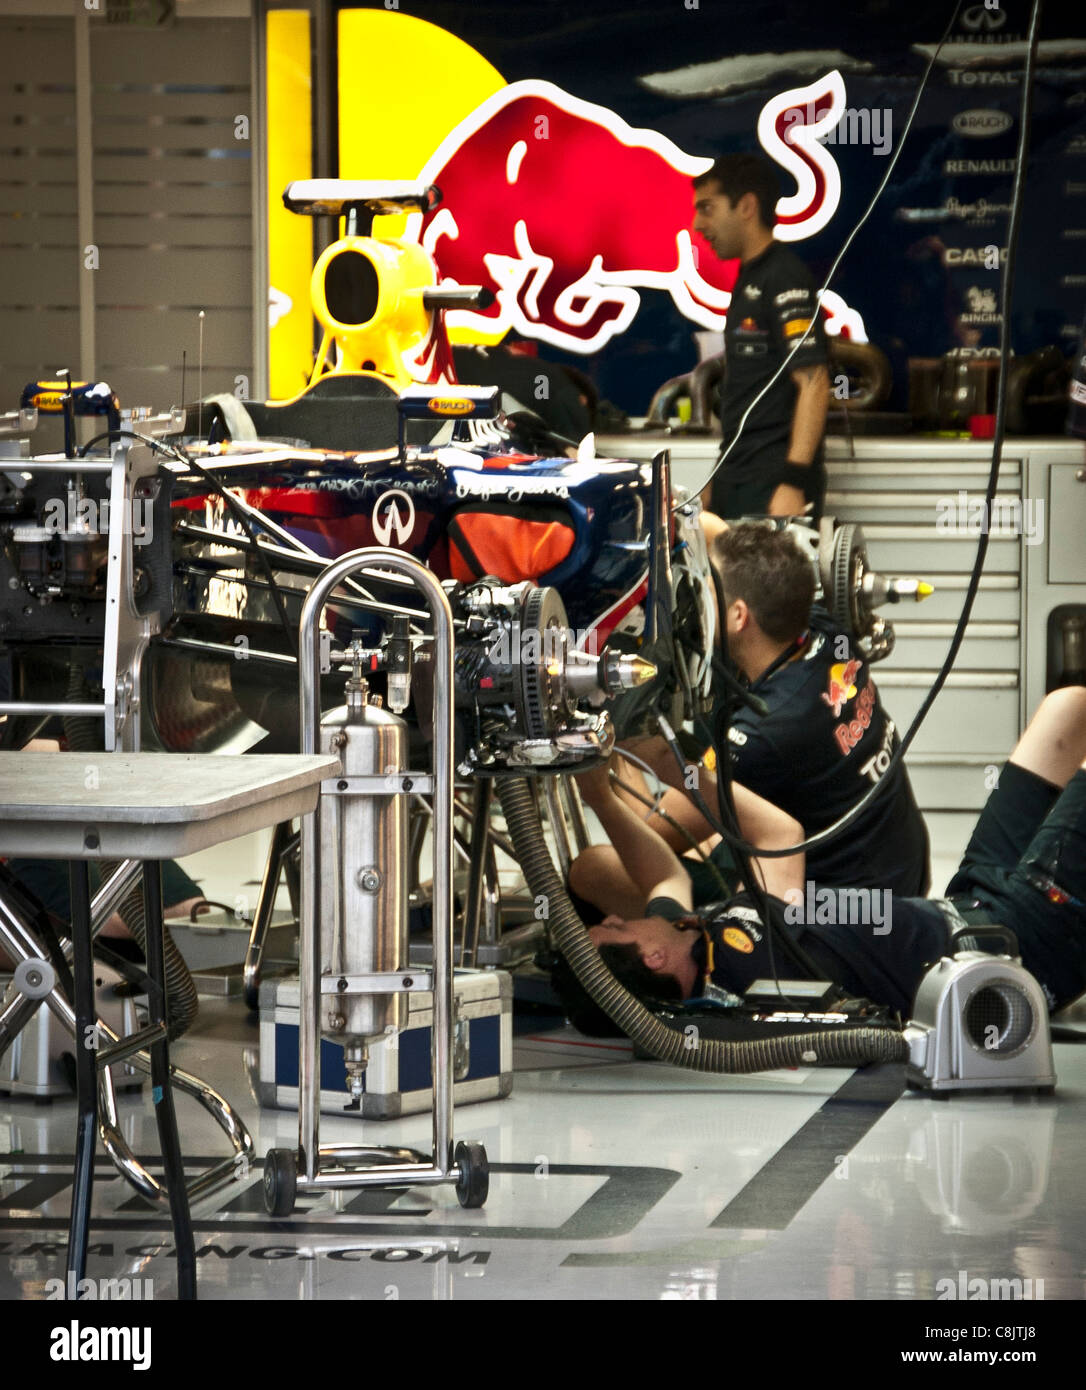 Red Bull mechanics working on Formula one racing car - Stock Image